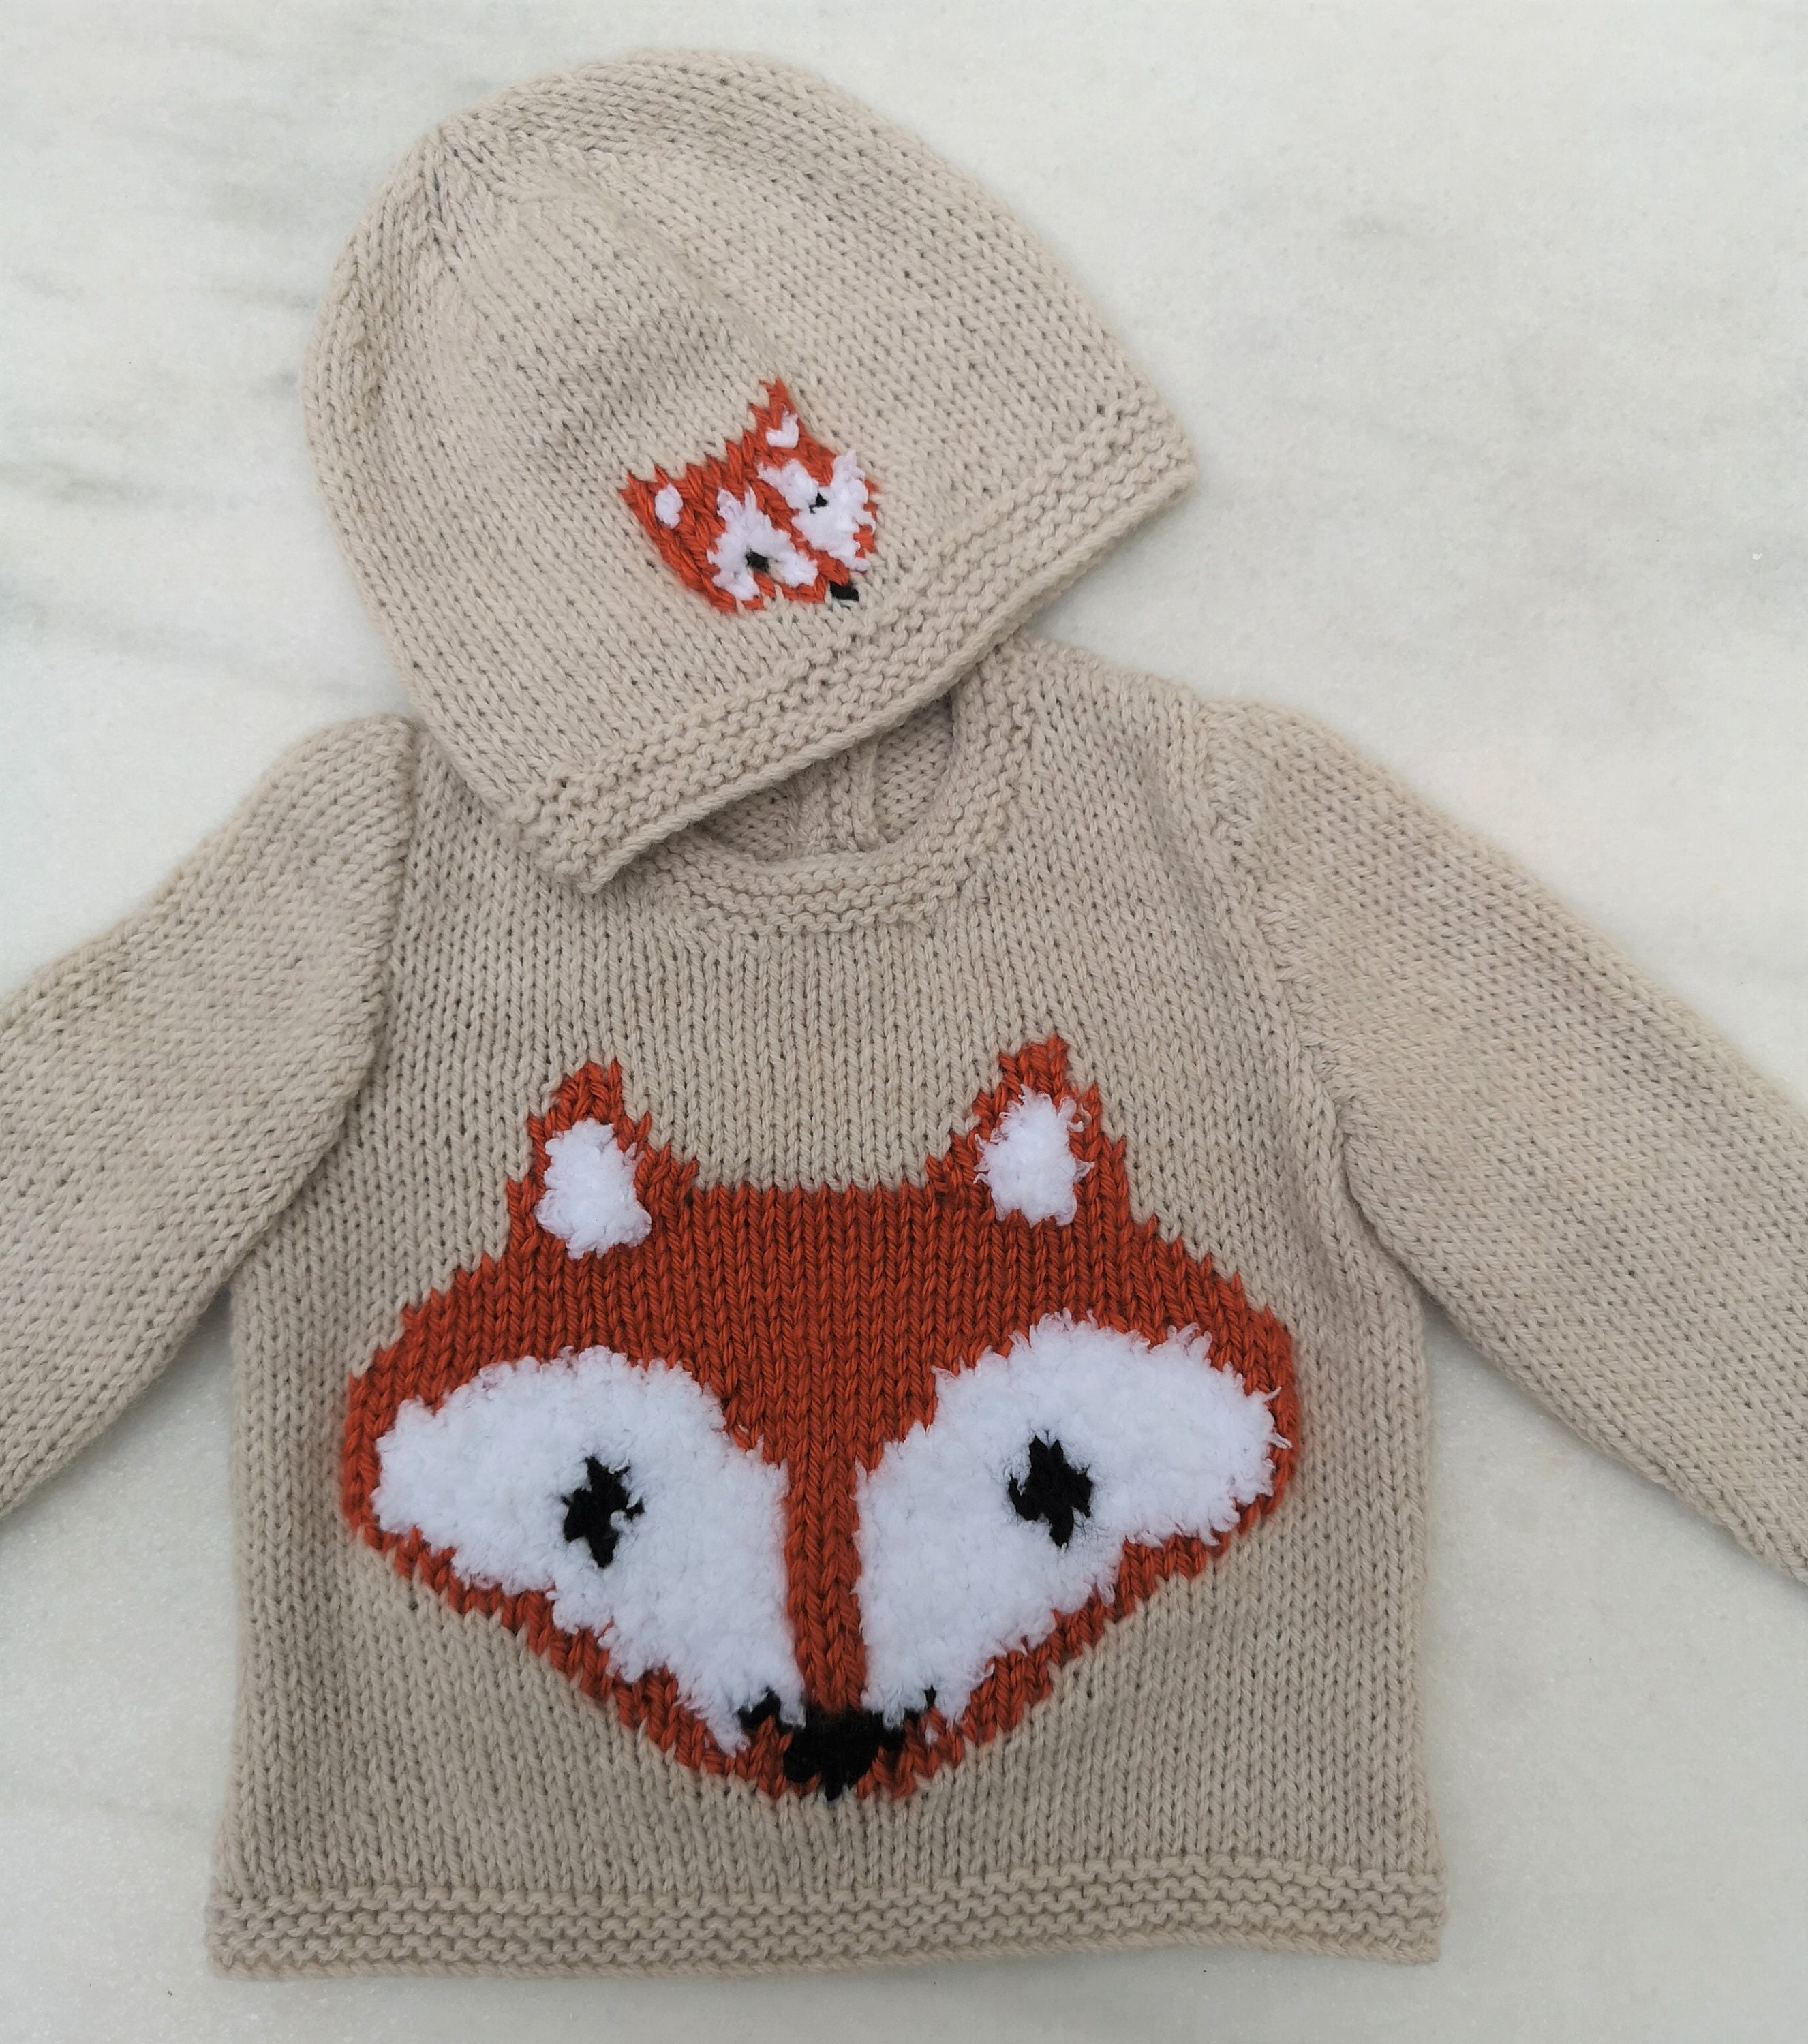 ea481d5ee97a Fox Knitting Pattern for Baby sweater trousers and hat